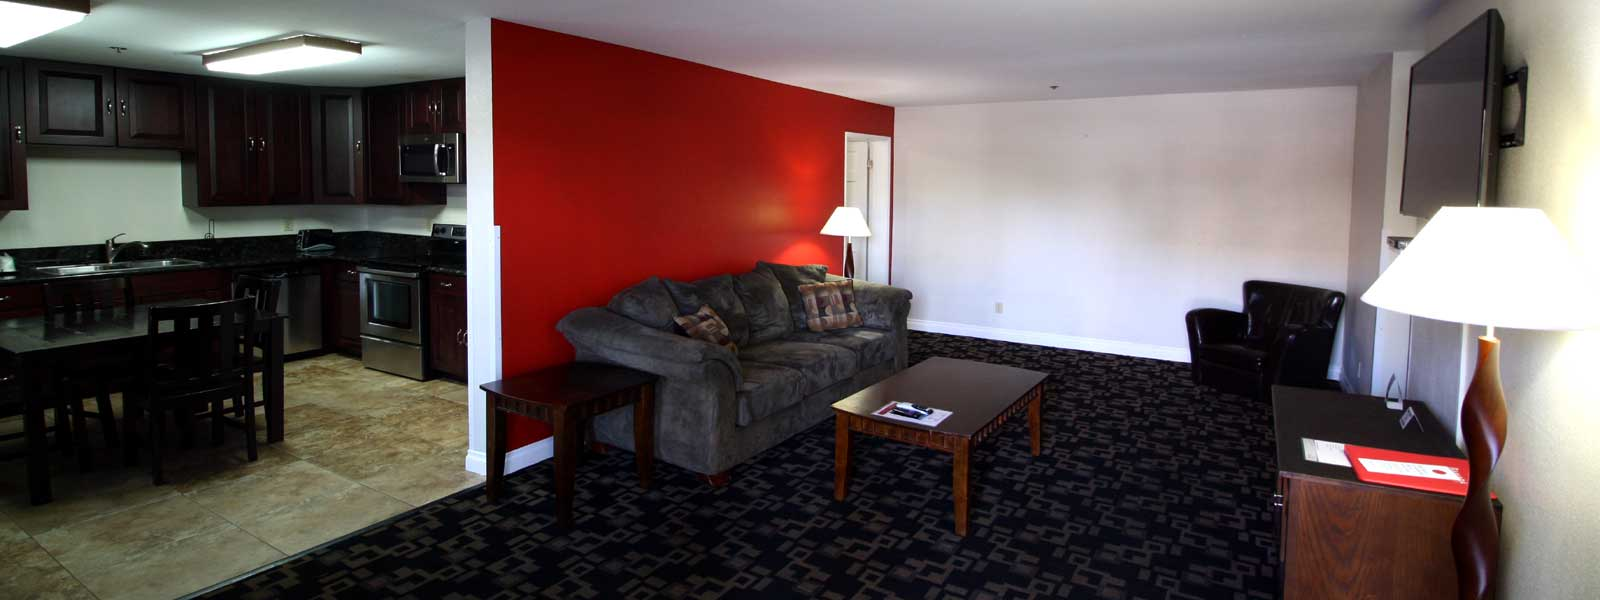 Ramada Oceanside Affordable Lodging in Oceanside